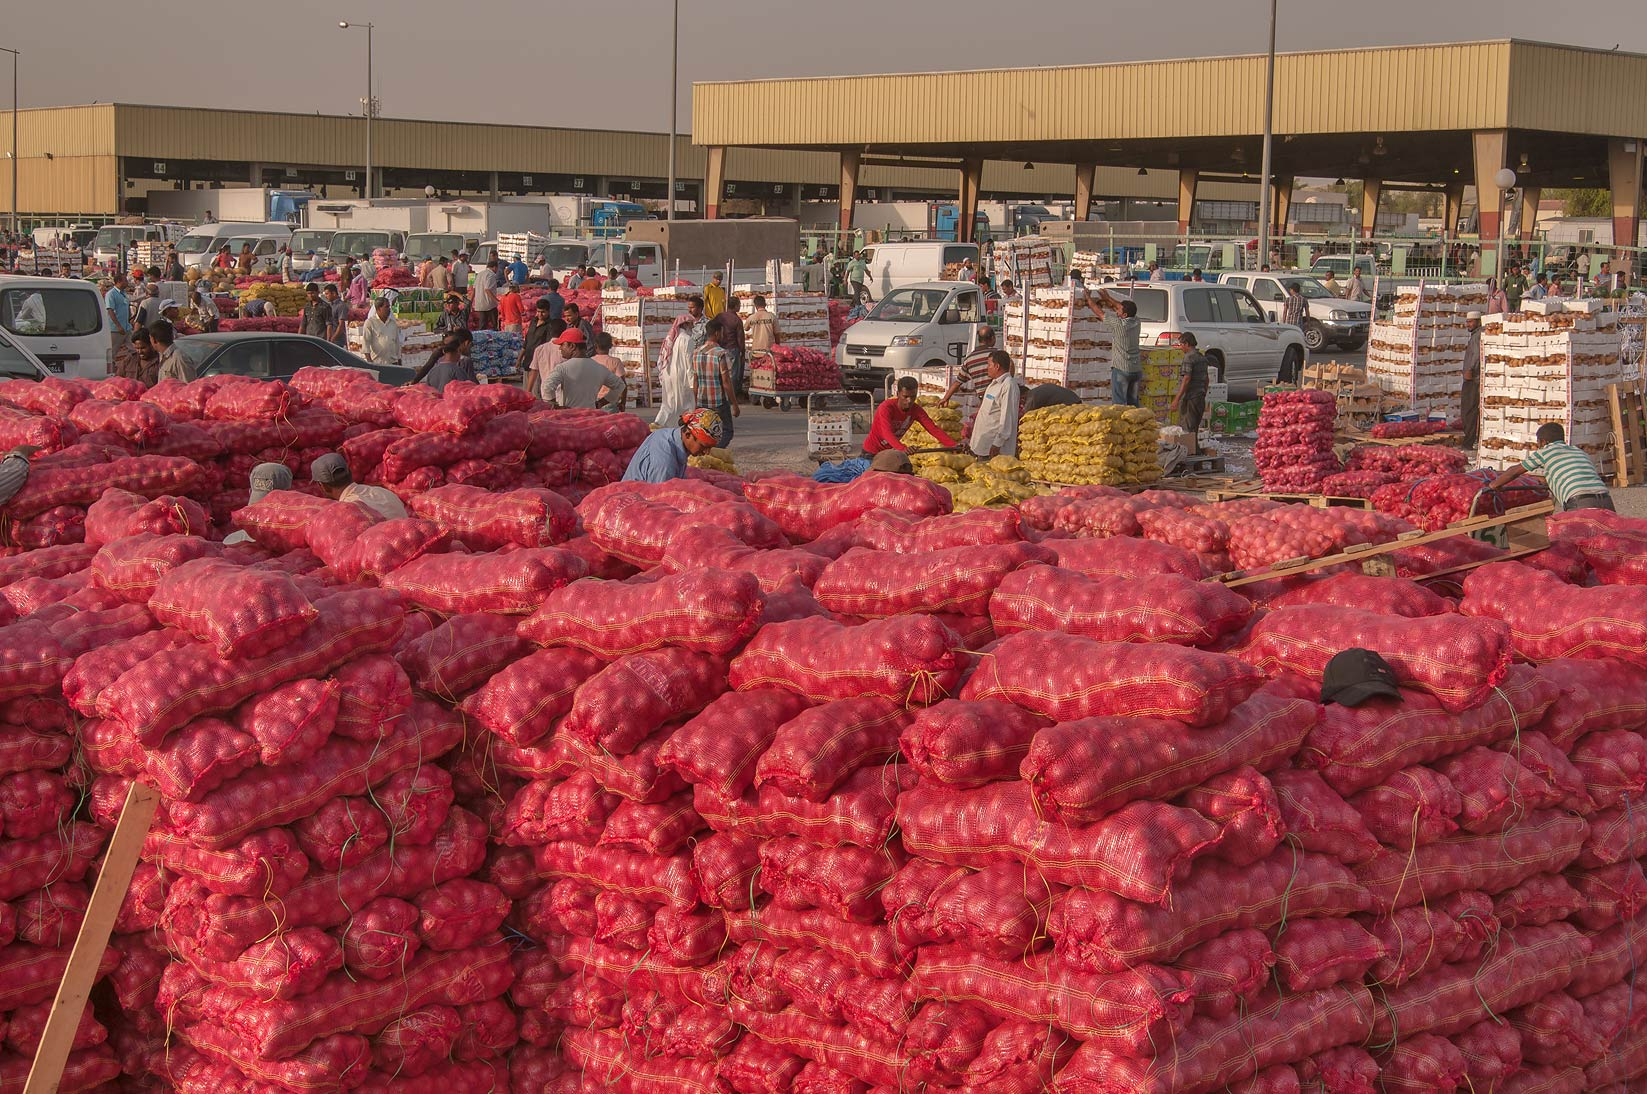 Bags with onions in Wholesale Vegetable Market, Abu Hamour area. Doha, Qatar